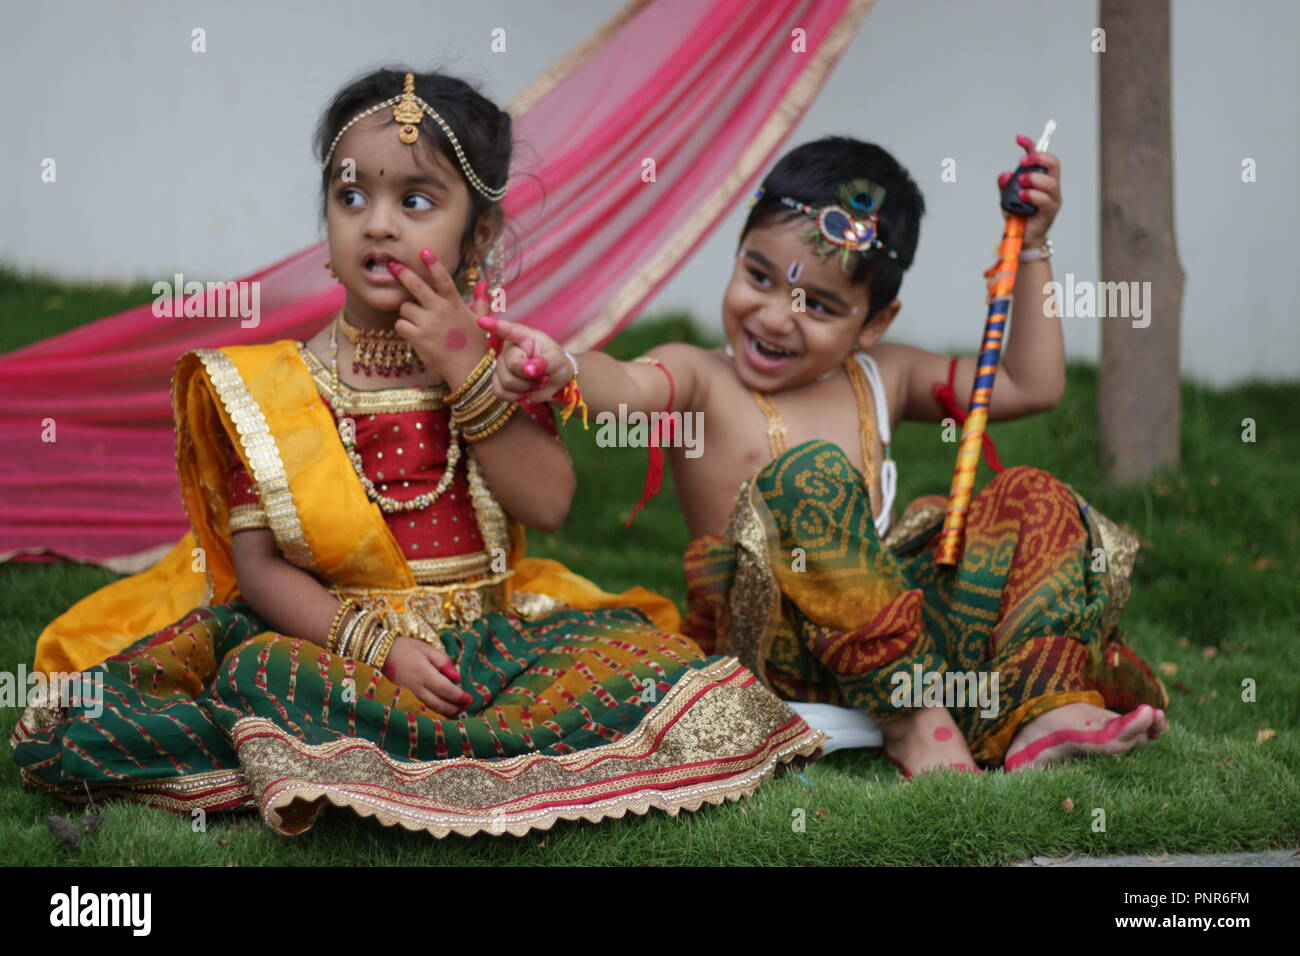 Image of: Radhe Krishna Indian Cute Kids Radha Krishna Freshwallpapersnet Indian Cute Kids Radha Krishna Stock Photo 219942232 Alamy